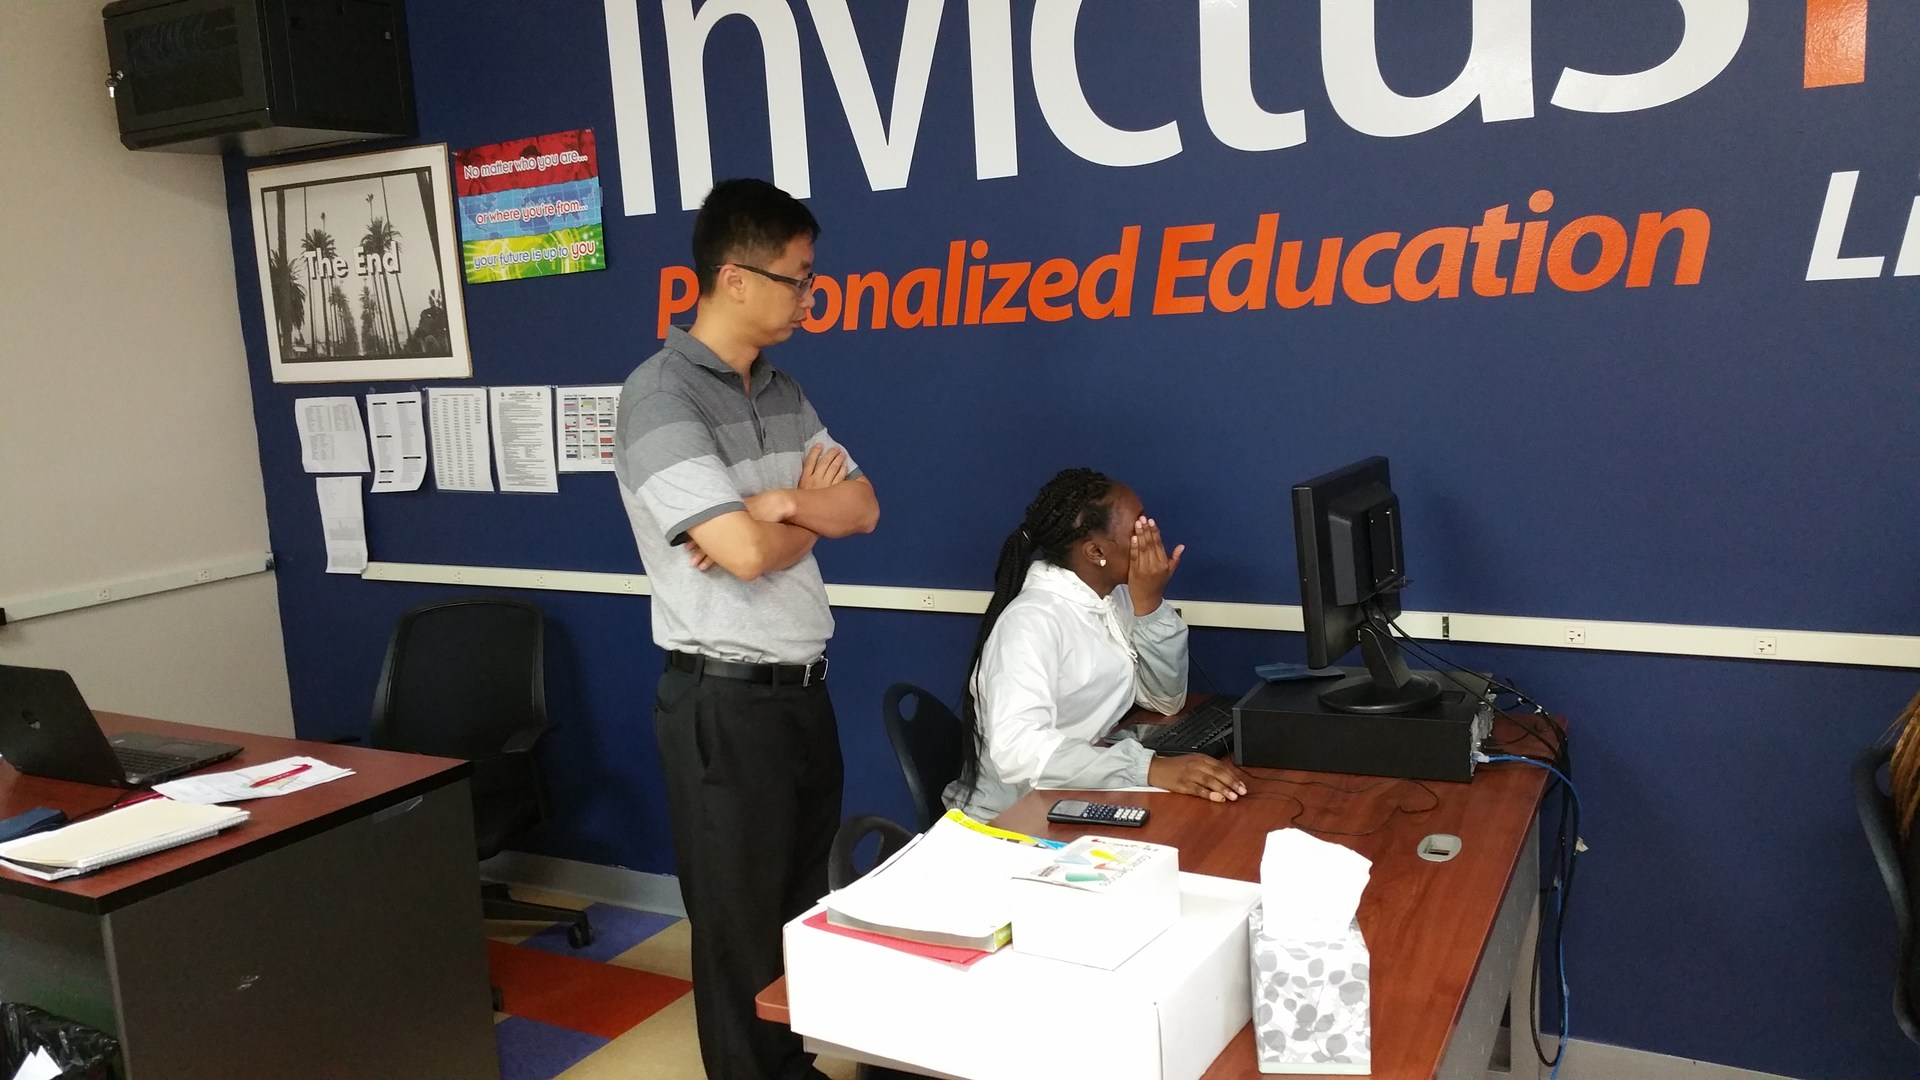 Invictus High School teacher helps student with assignment